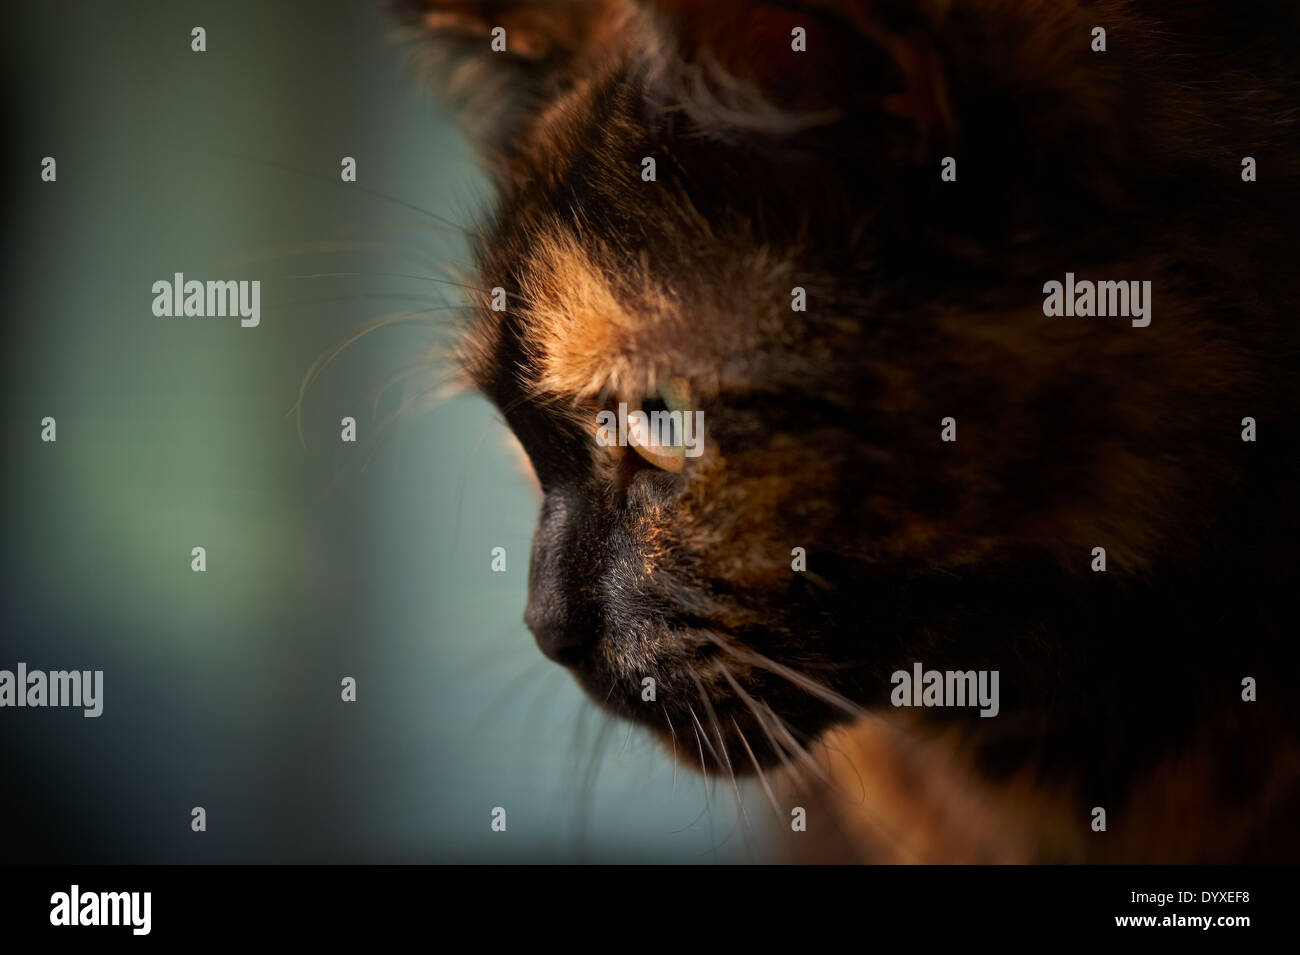 Close-up of tortoiseshell cat, Australia Stock Photo